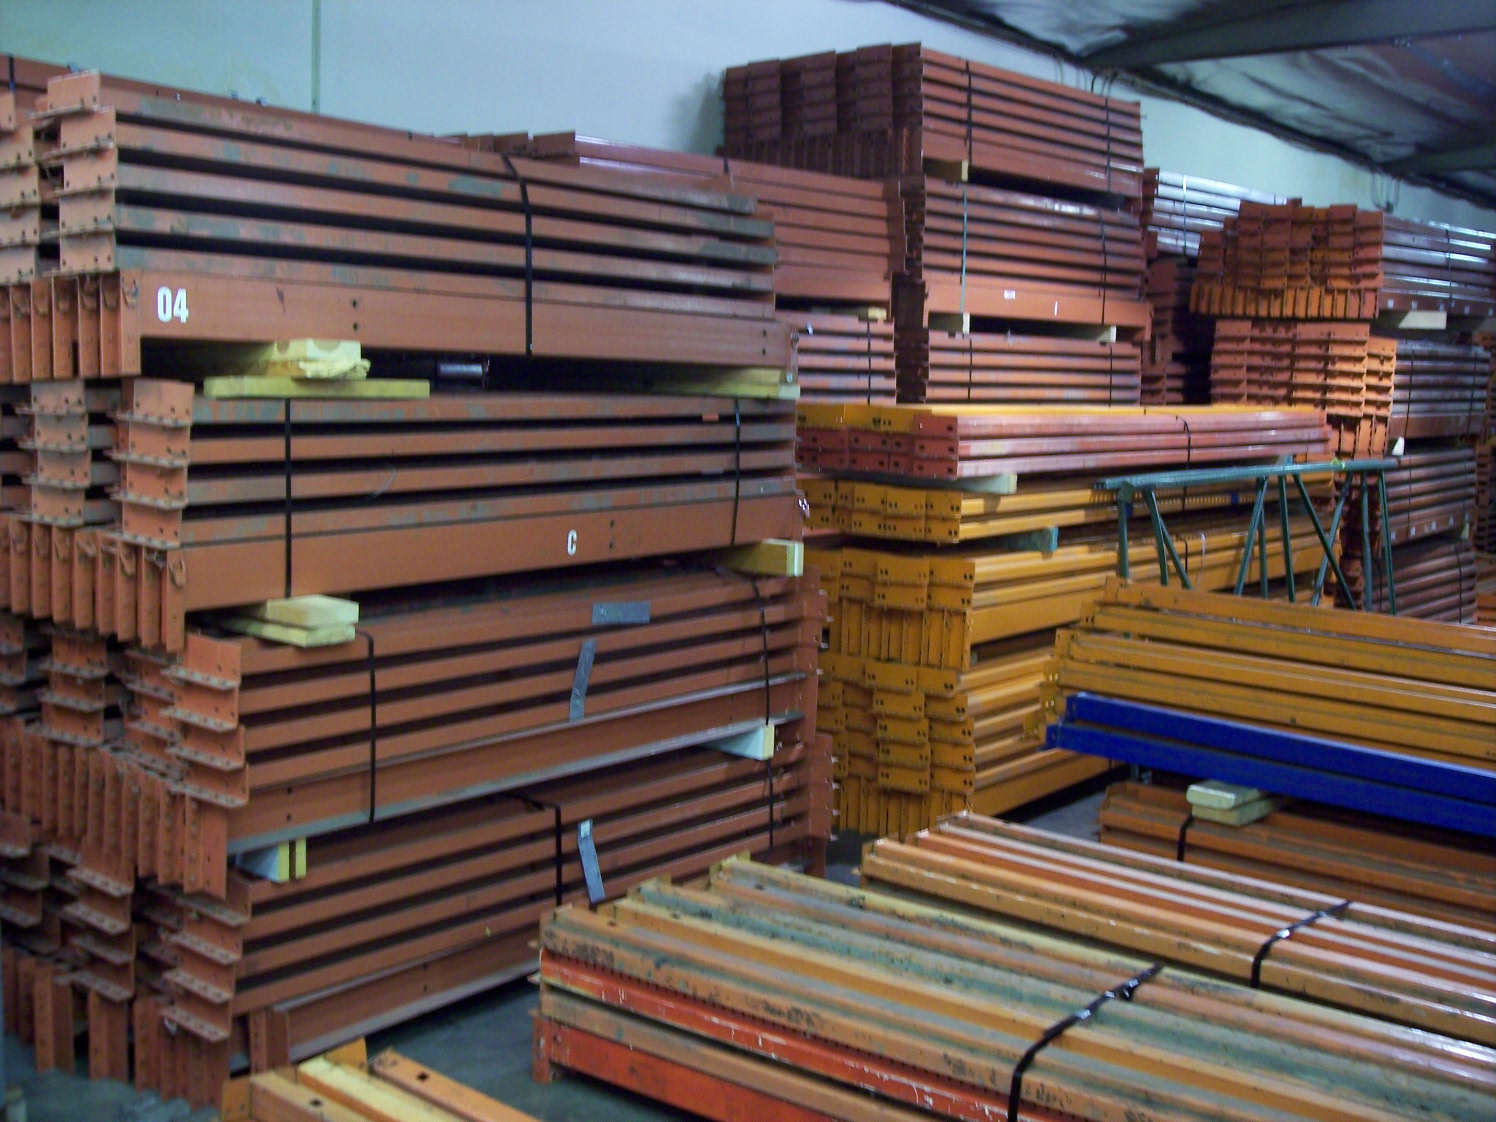 storage of system warehouse pallet and rack web unarco components a